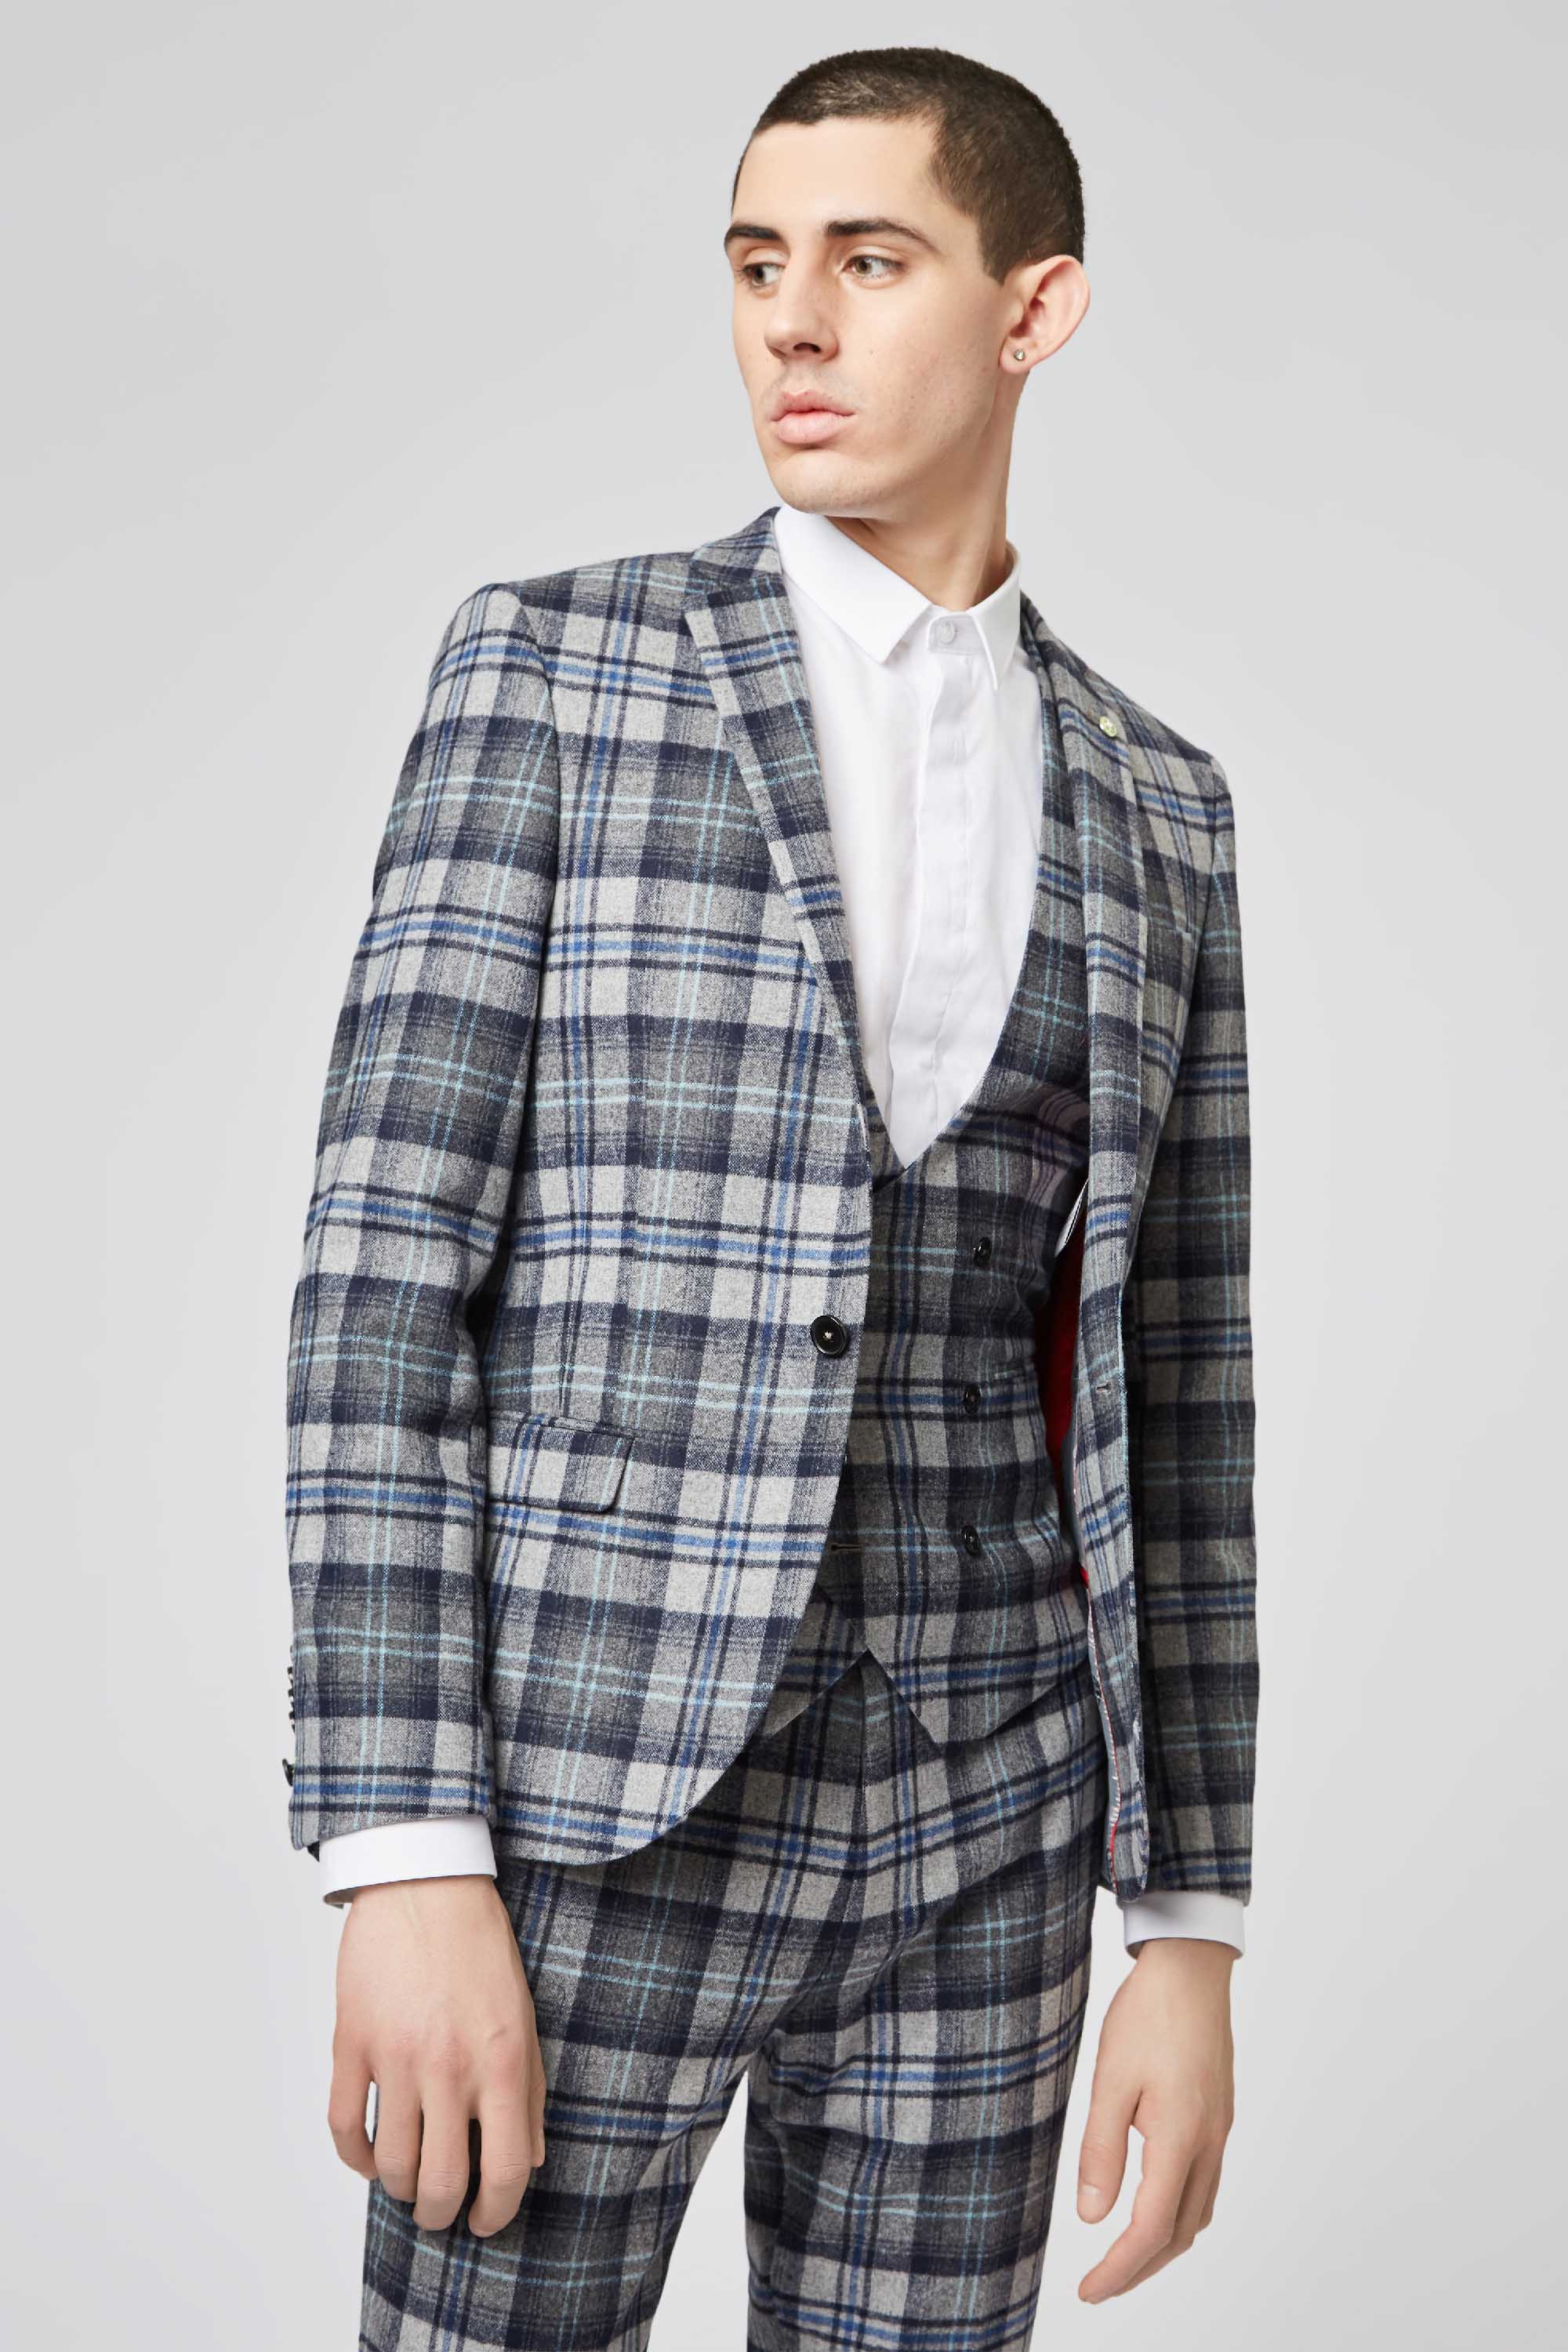 HOFFMAN SKINNY FIT GREY TARTAN SUIT JACKET